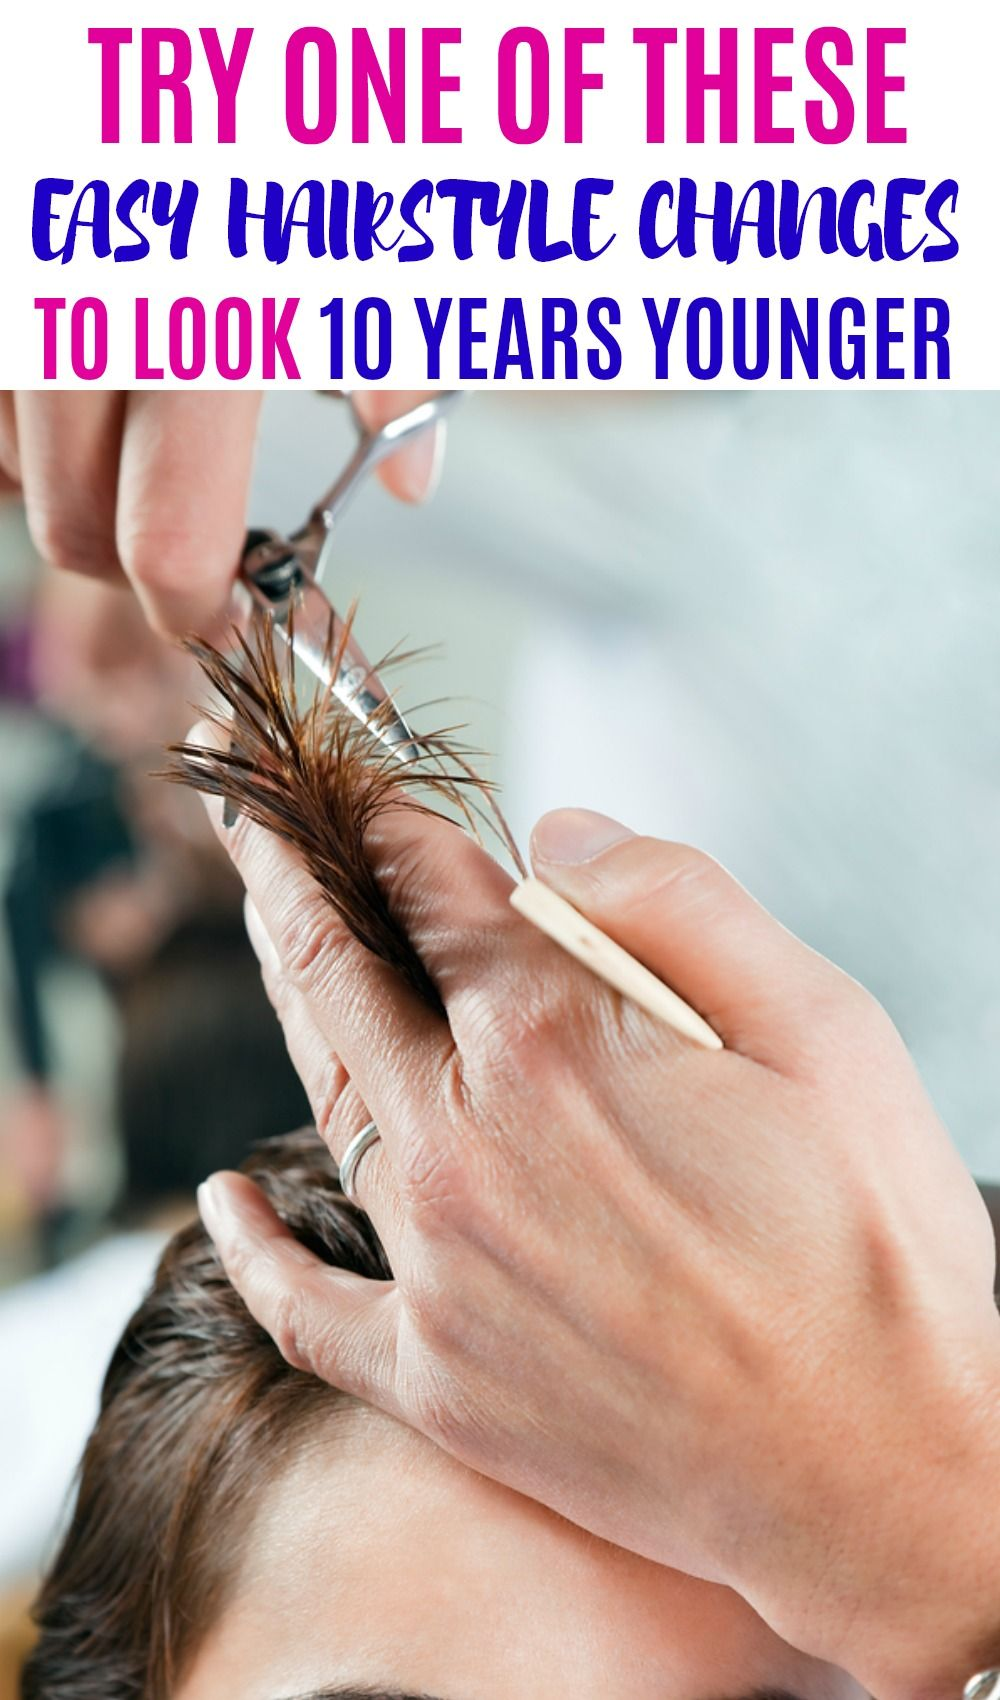 easy hairstyle changes that can help you look younger | hair style